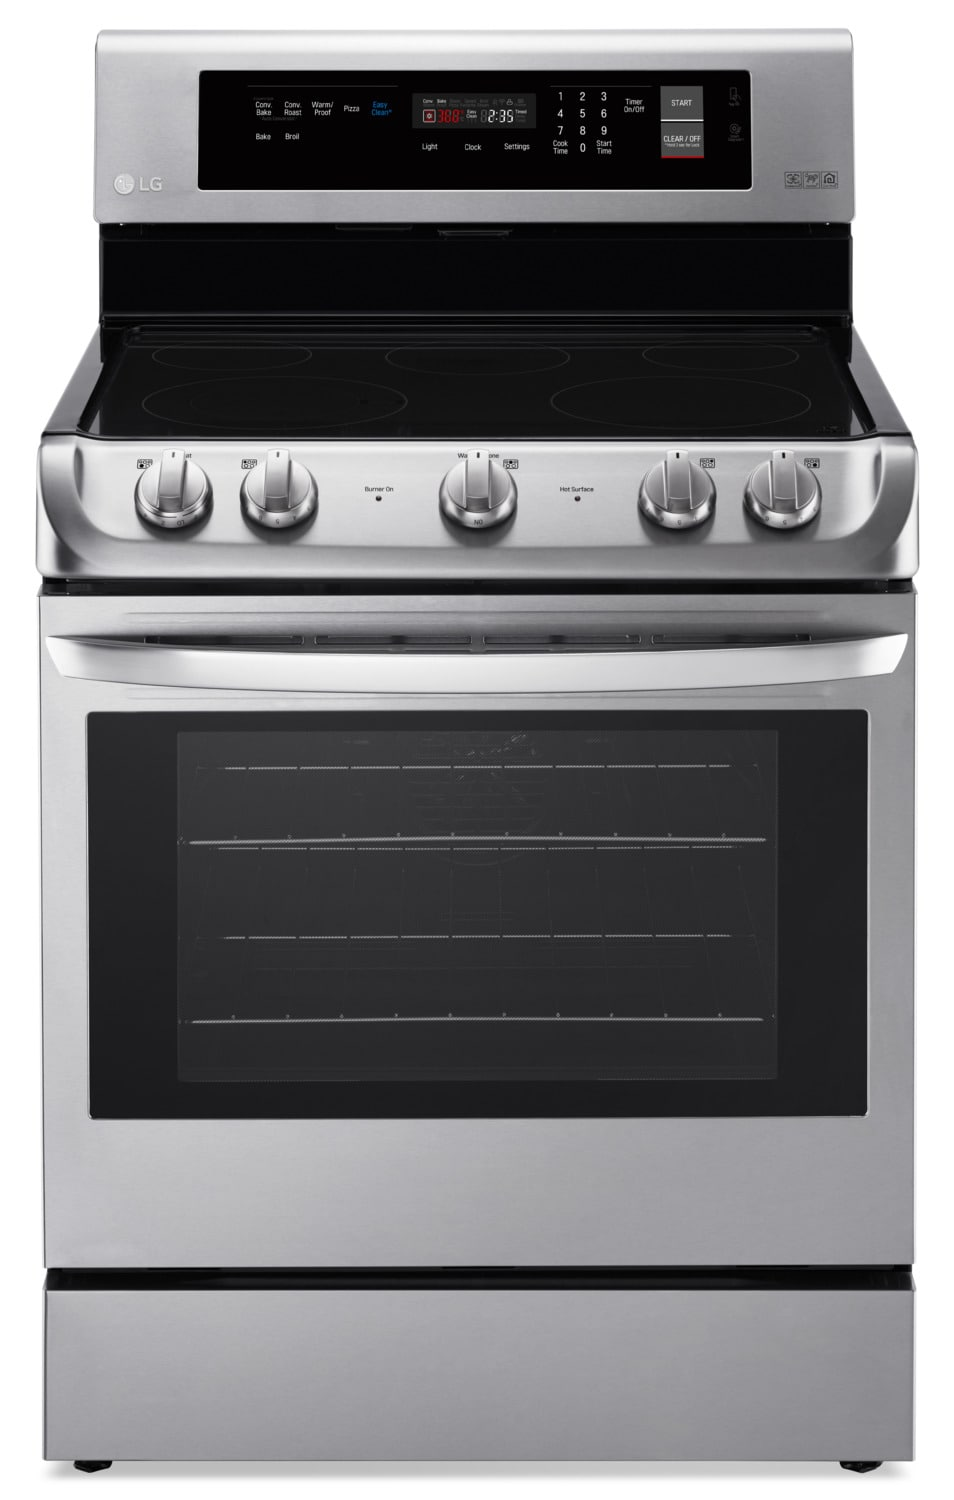 LG Appliances Stainless Steel Freestanding Electric Convection Range (6.3 Cu. Ft) - LRE4211ST